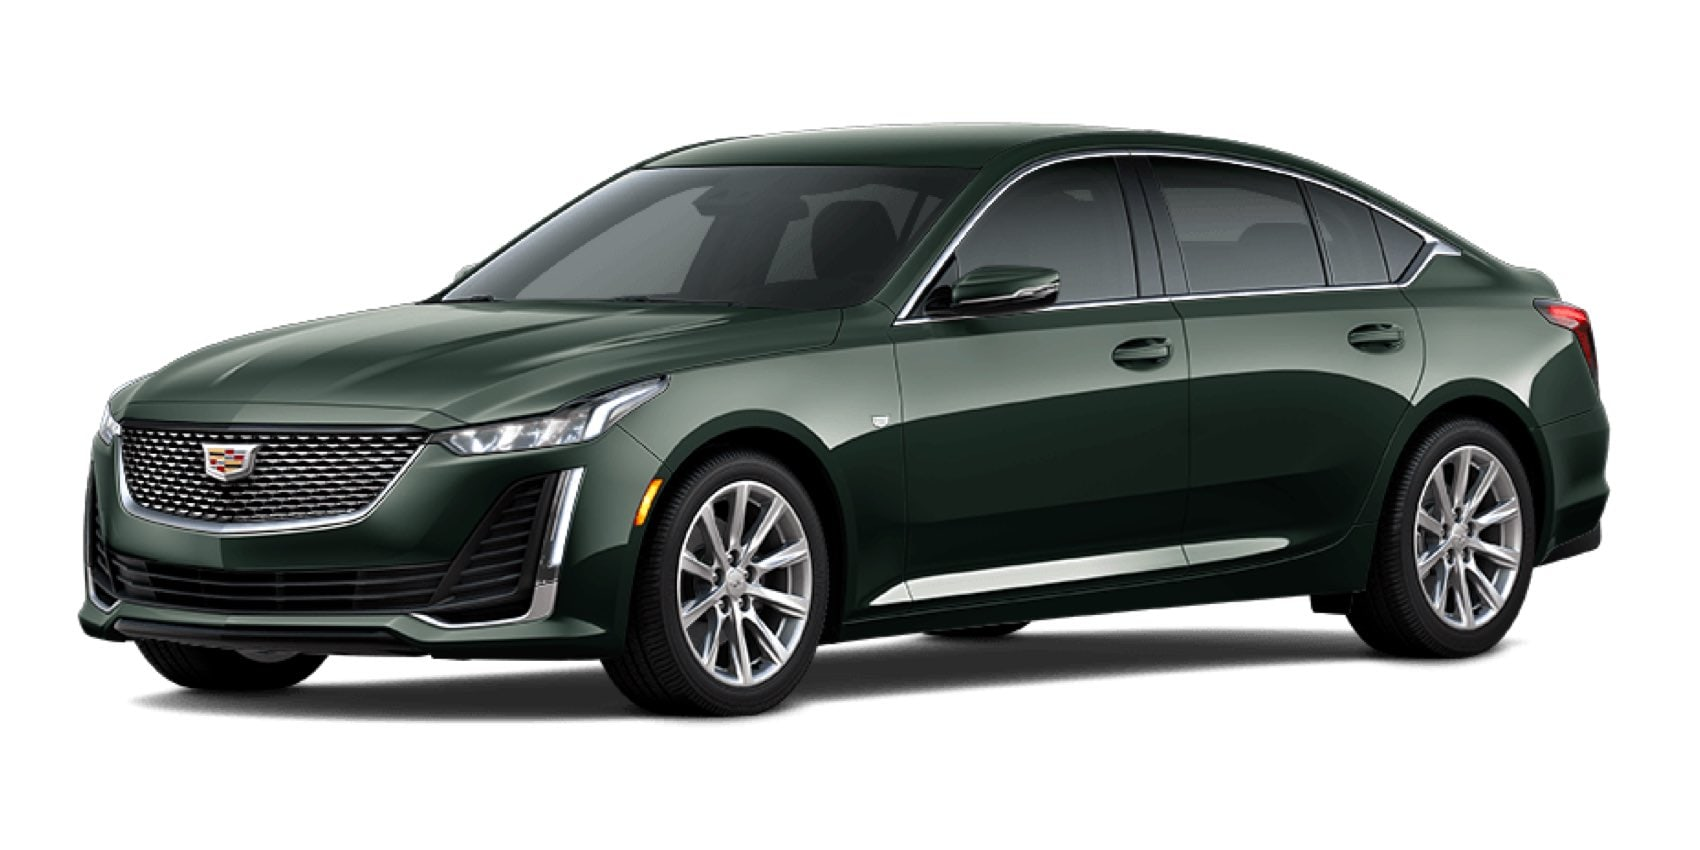 2021 Cadillac CT5 in Evergreen Metallic